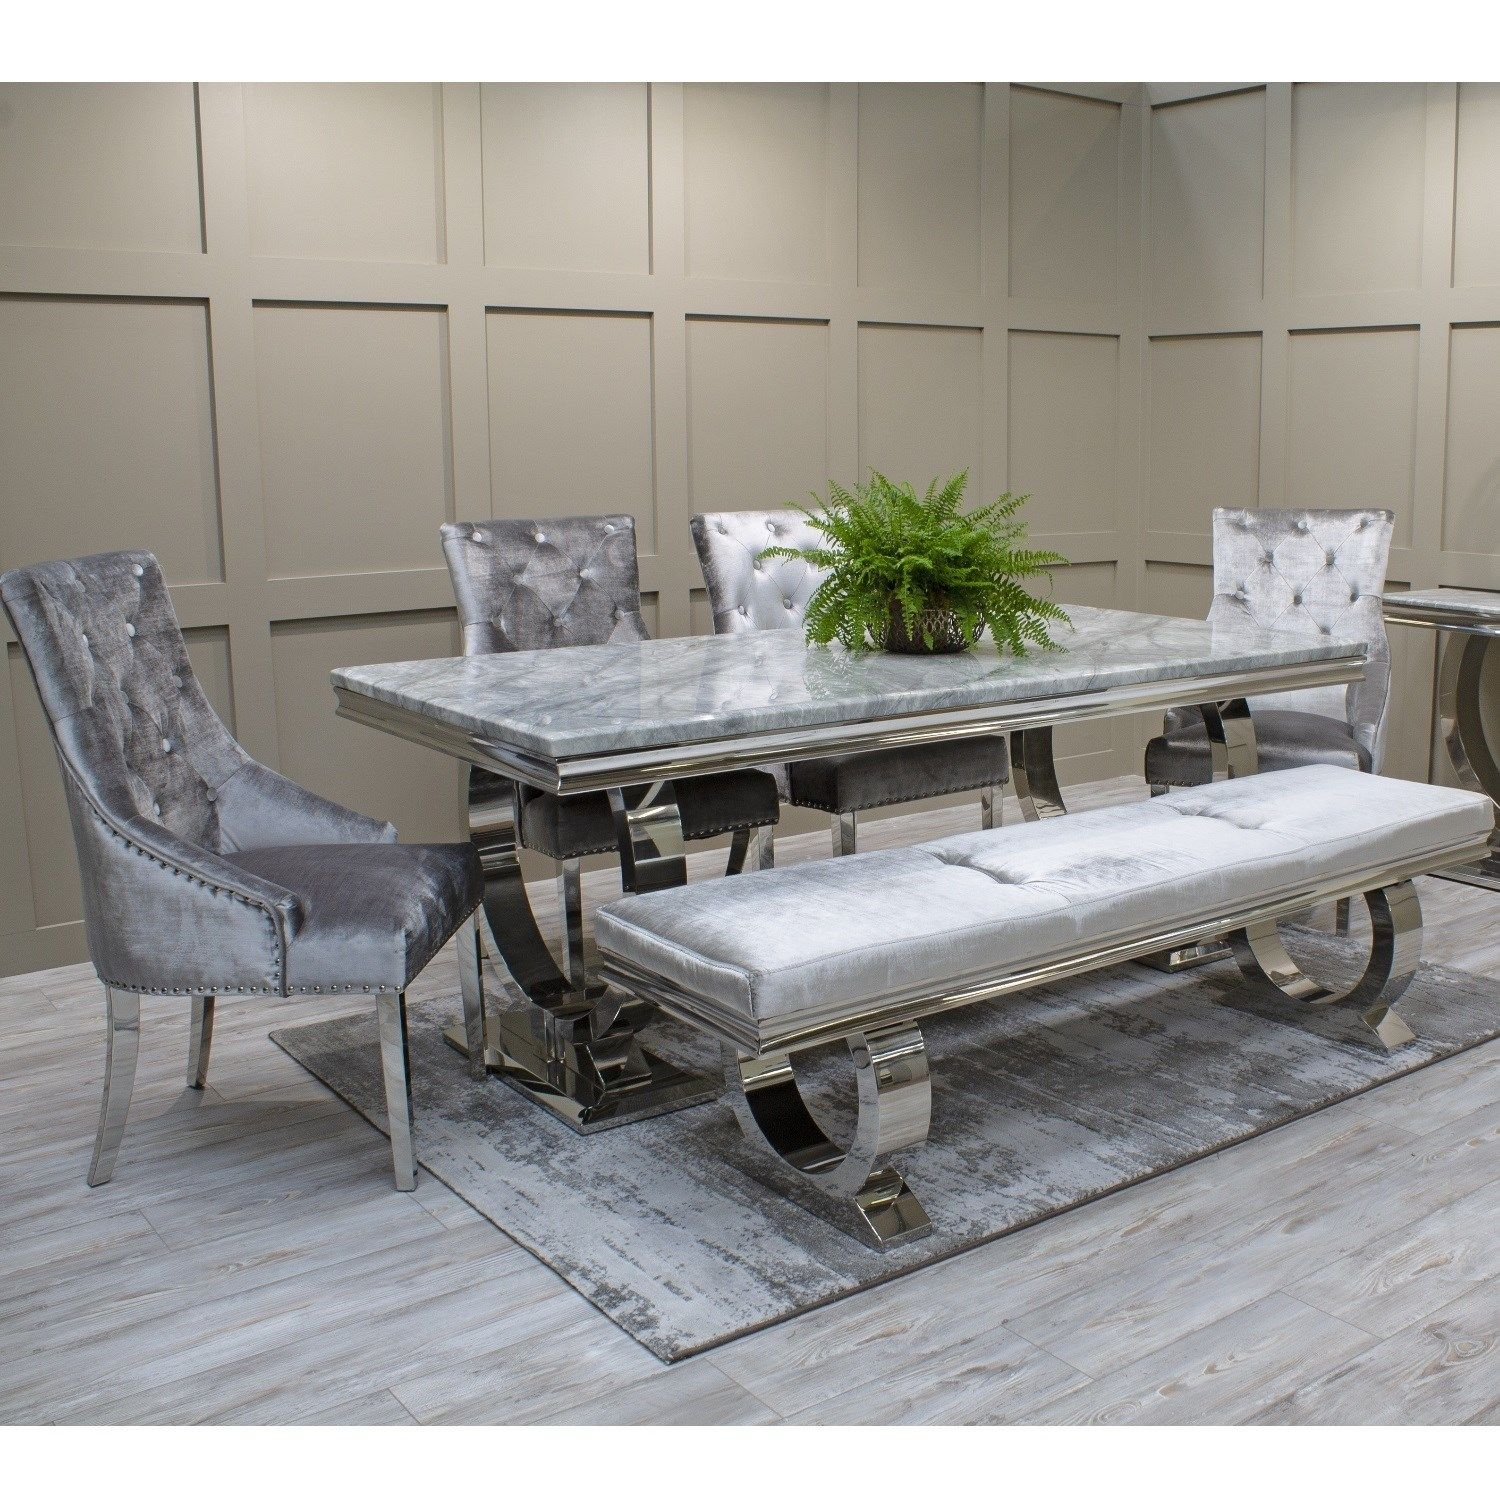 Grey Marble Mirrored Dining Table And Chair Set With Bench In Silver Grey Velvet Grey Dining Tables Dining Table Bench Seat Black Dining Room Sets